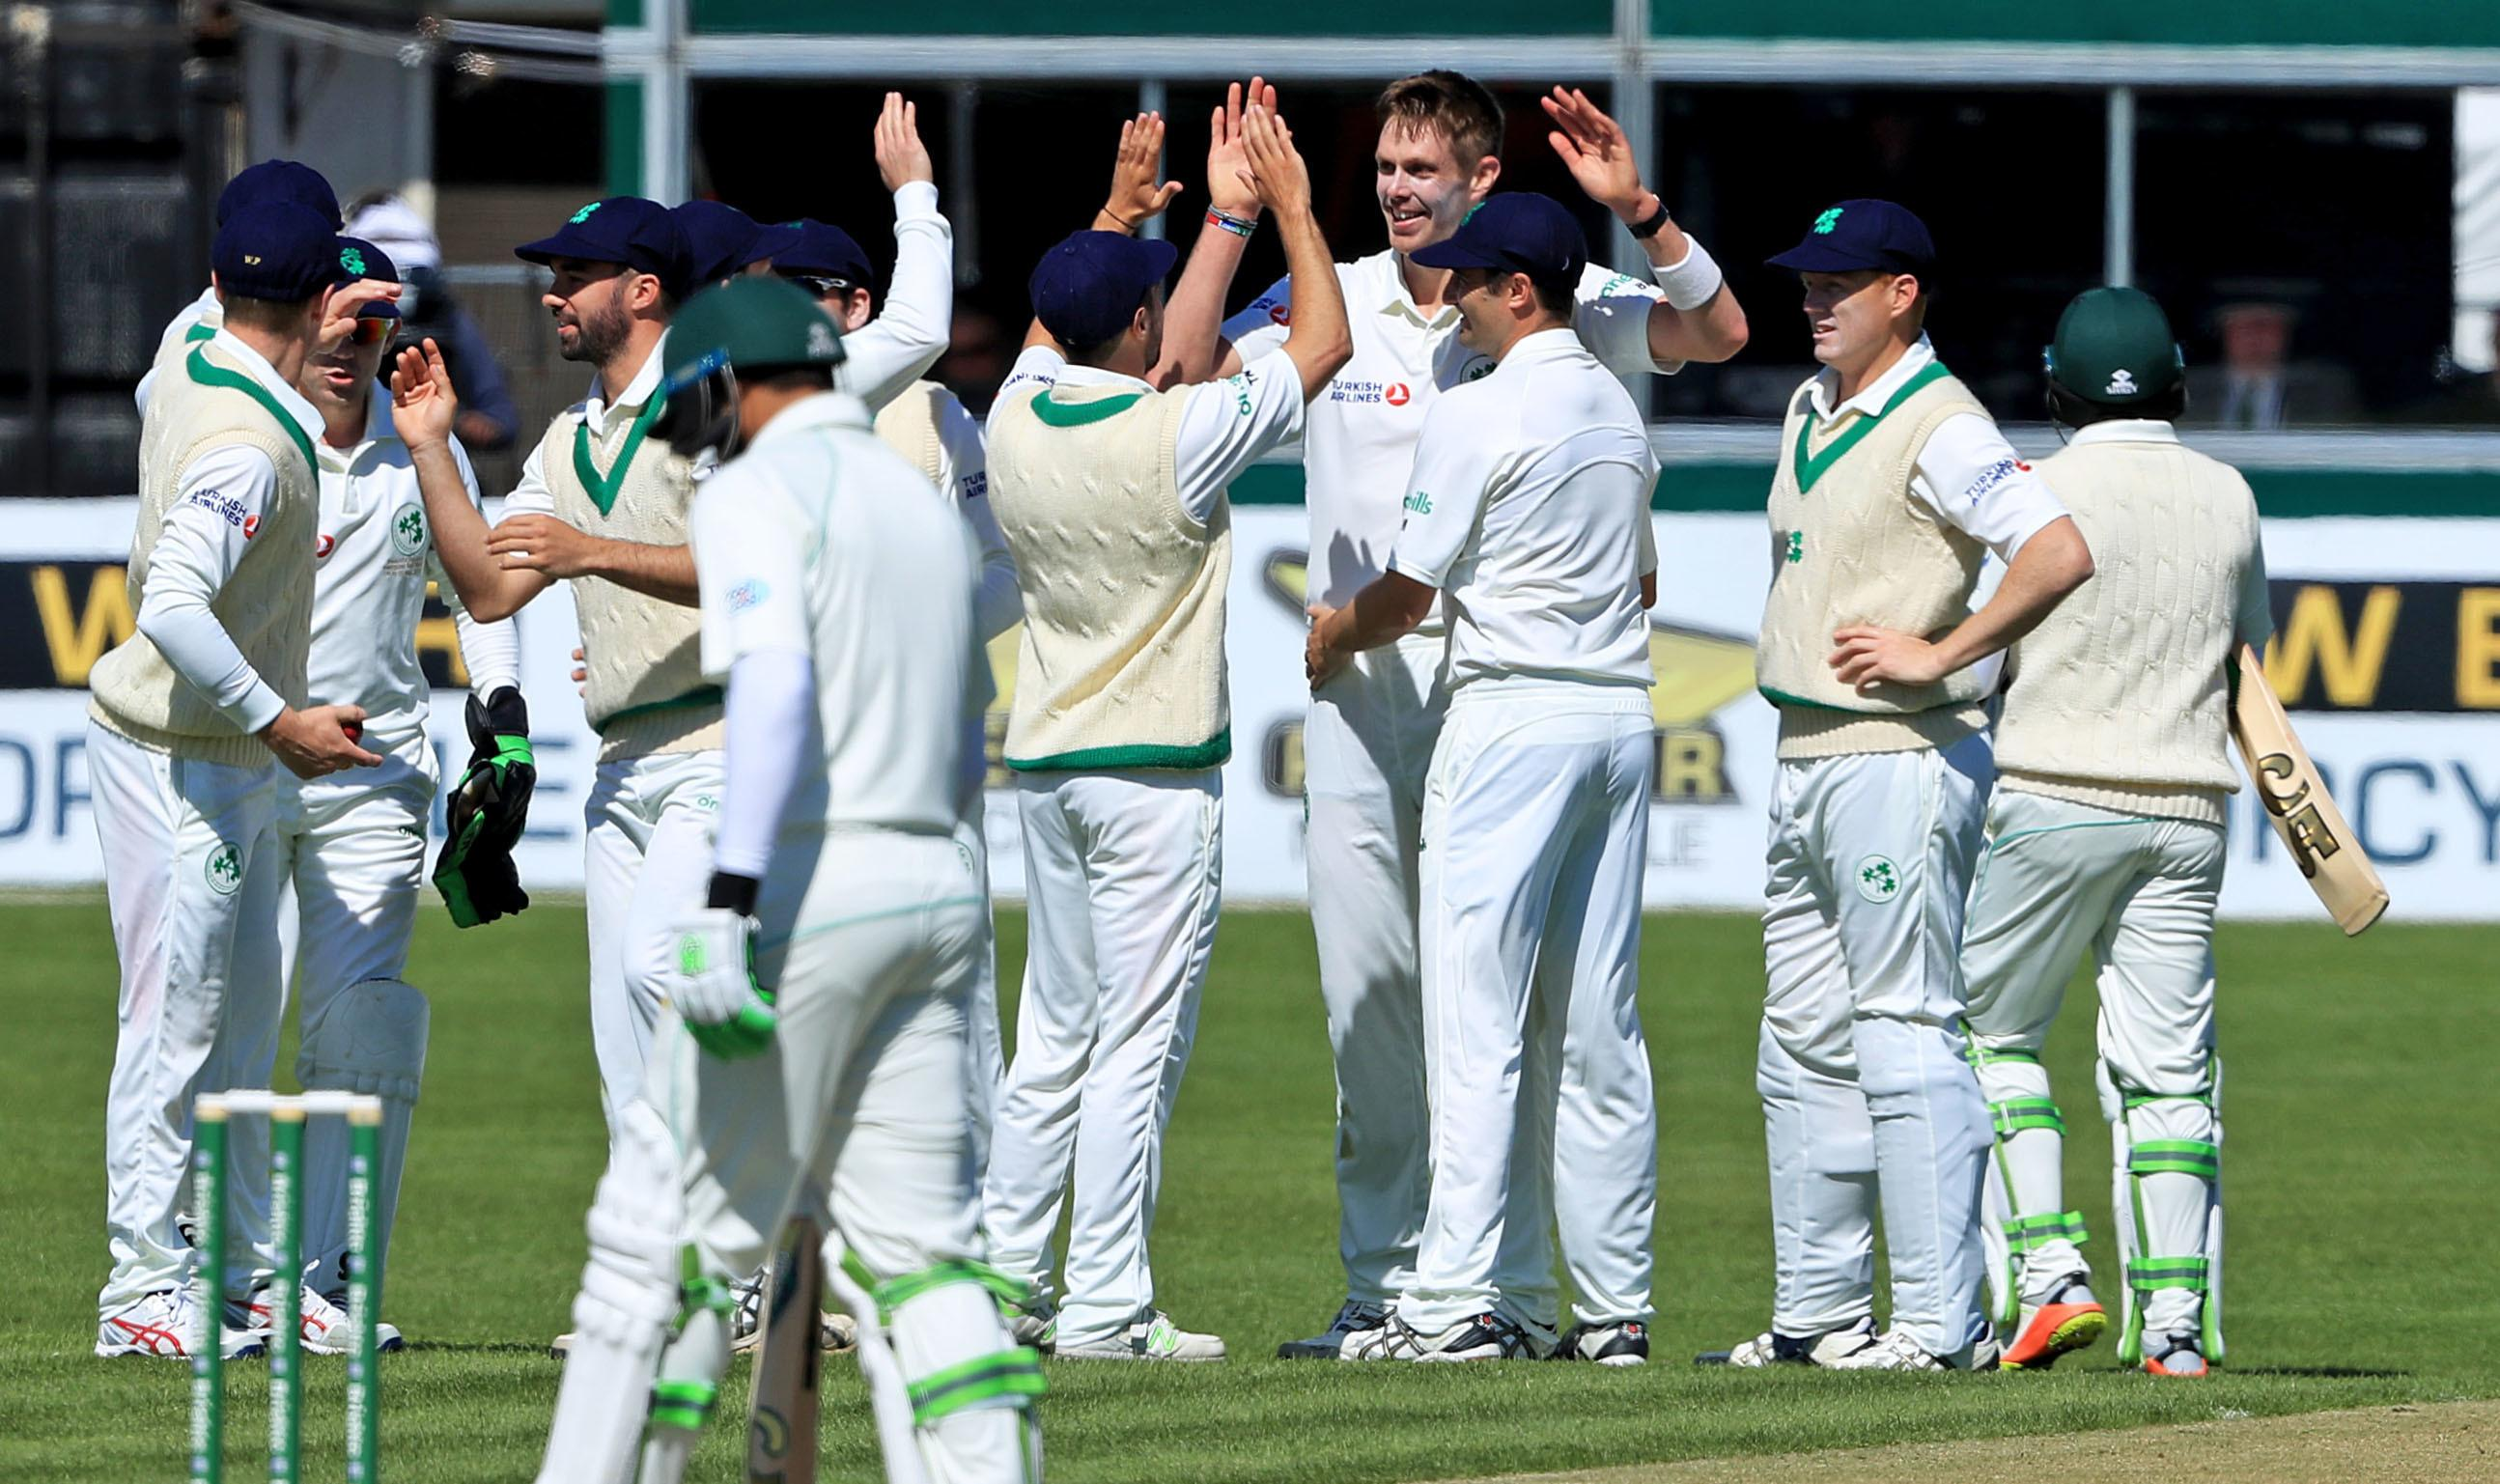 Ireland hosted Pakistan in their inaugural Test at Malahide in May